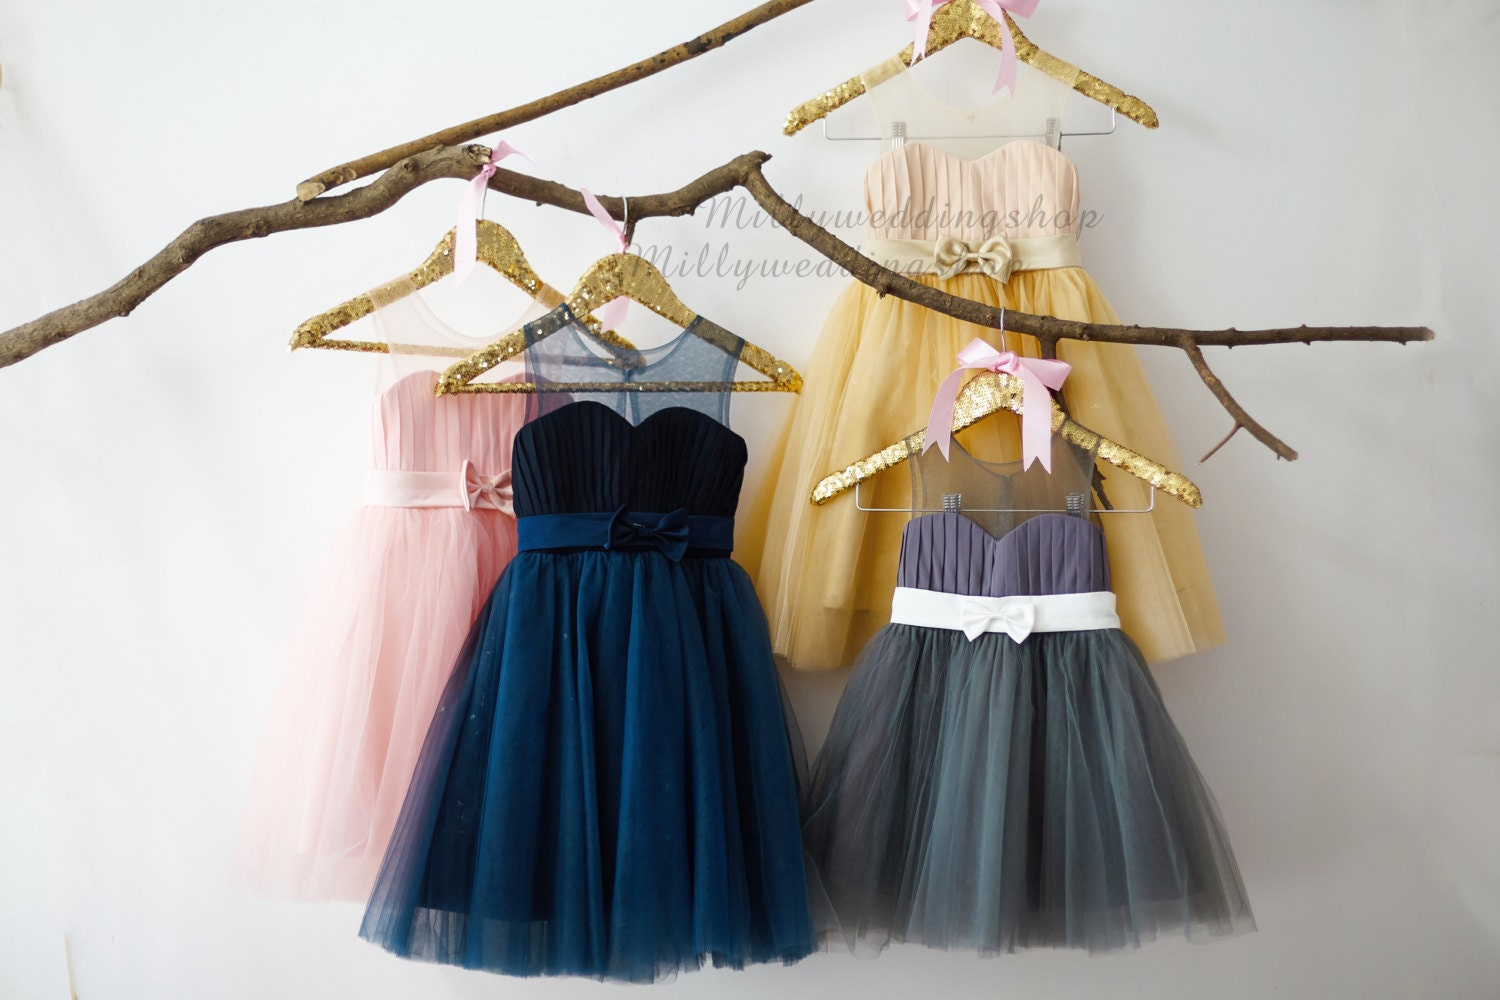 Pinknavy Bluegraychampagne Chiffon Tulle Flower Girl Dress